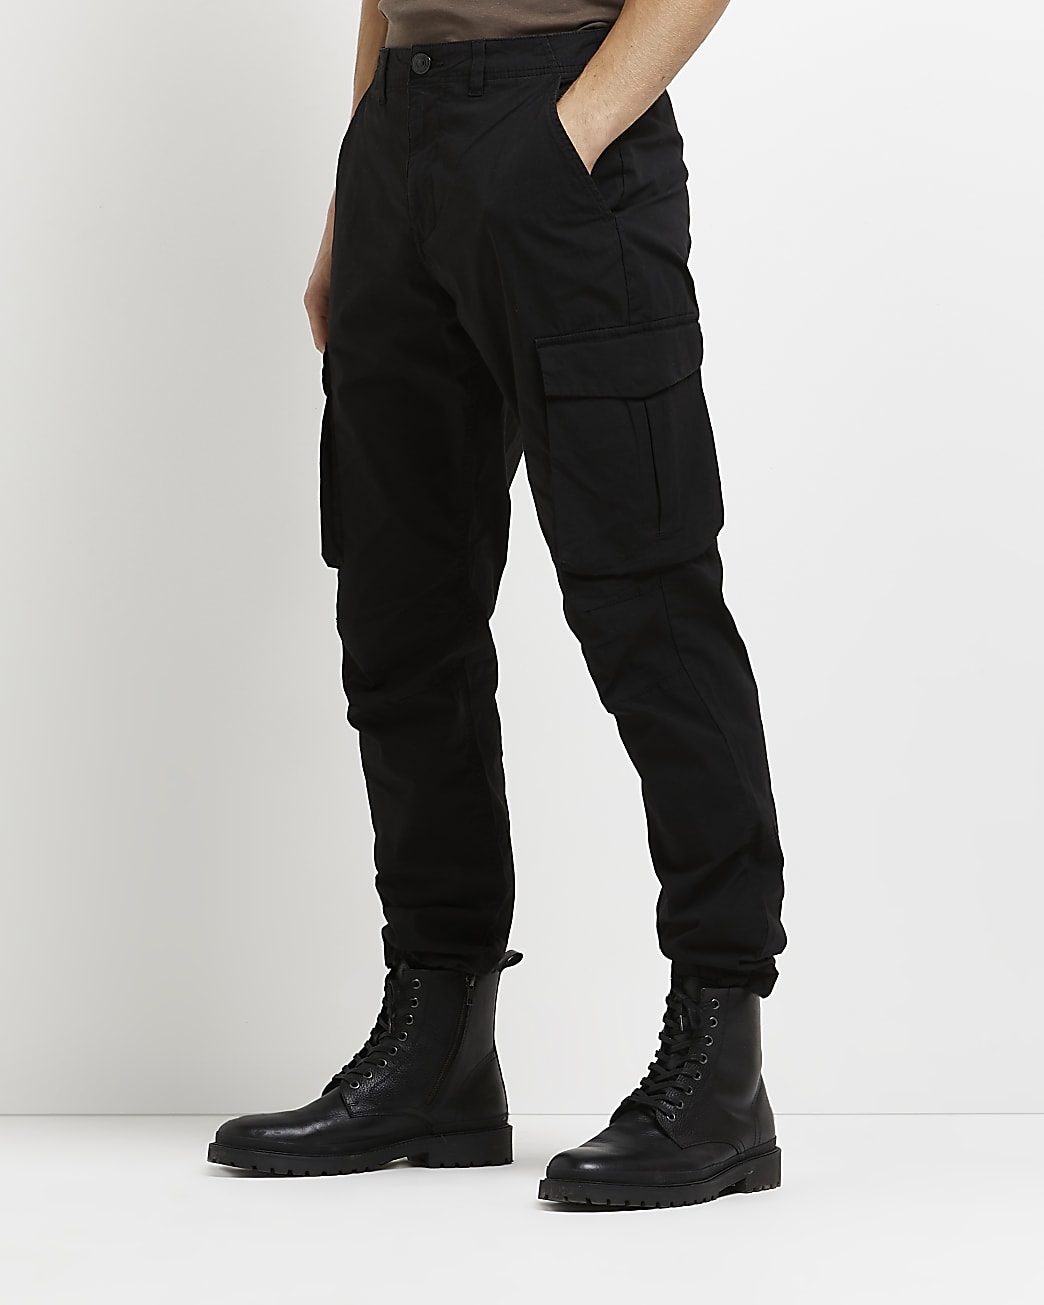 Black slim fit casual cargo trousers